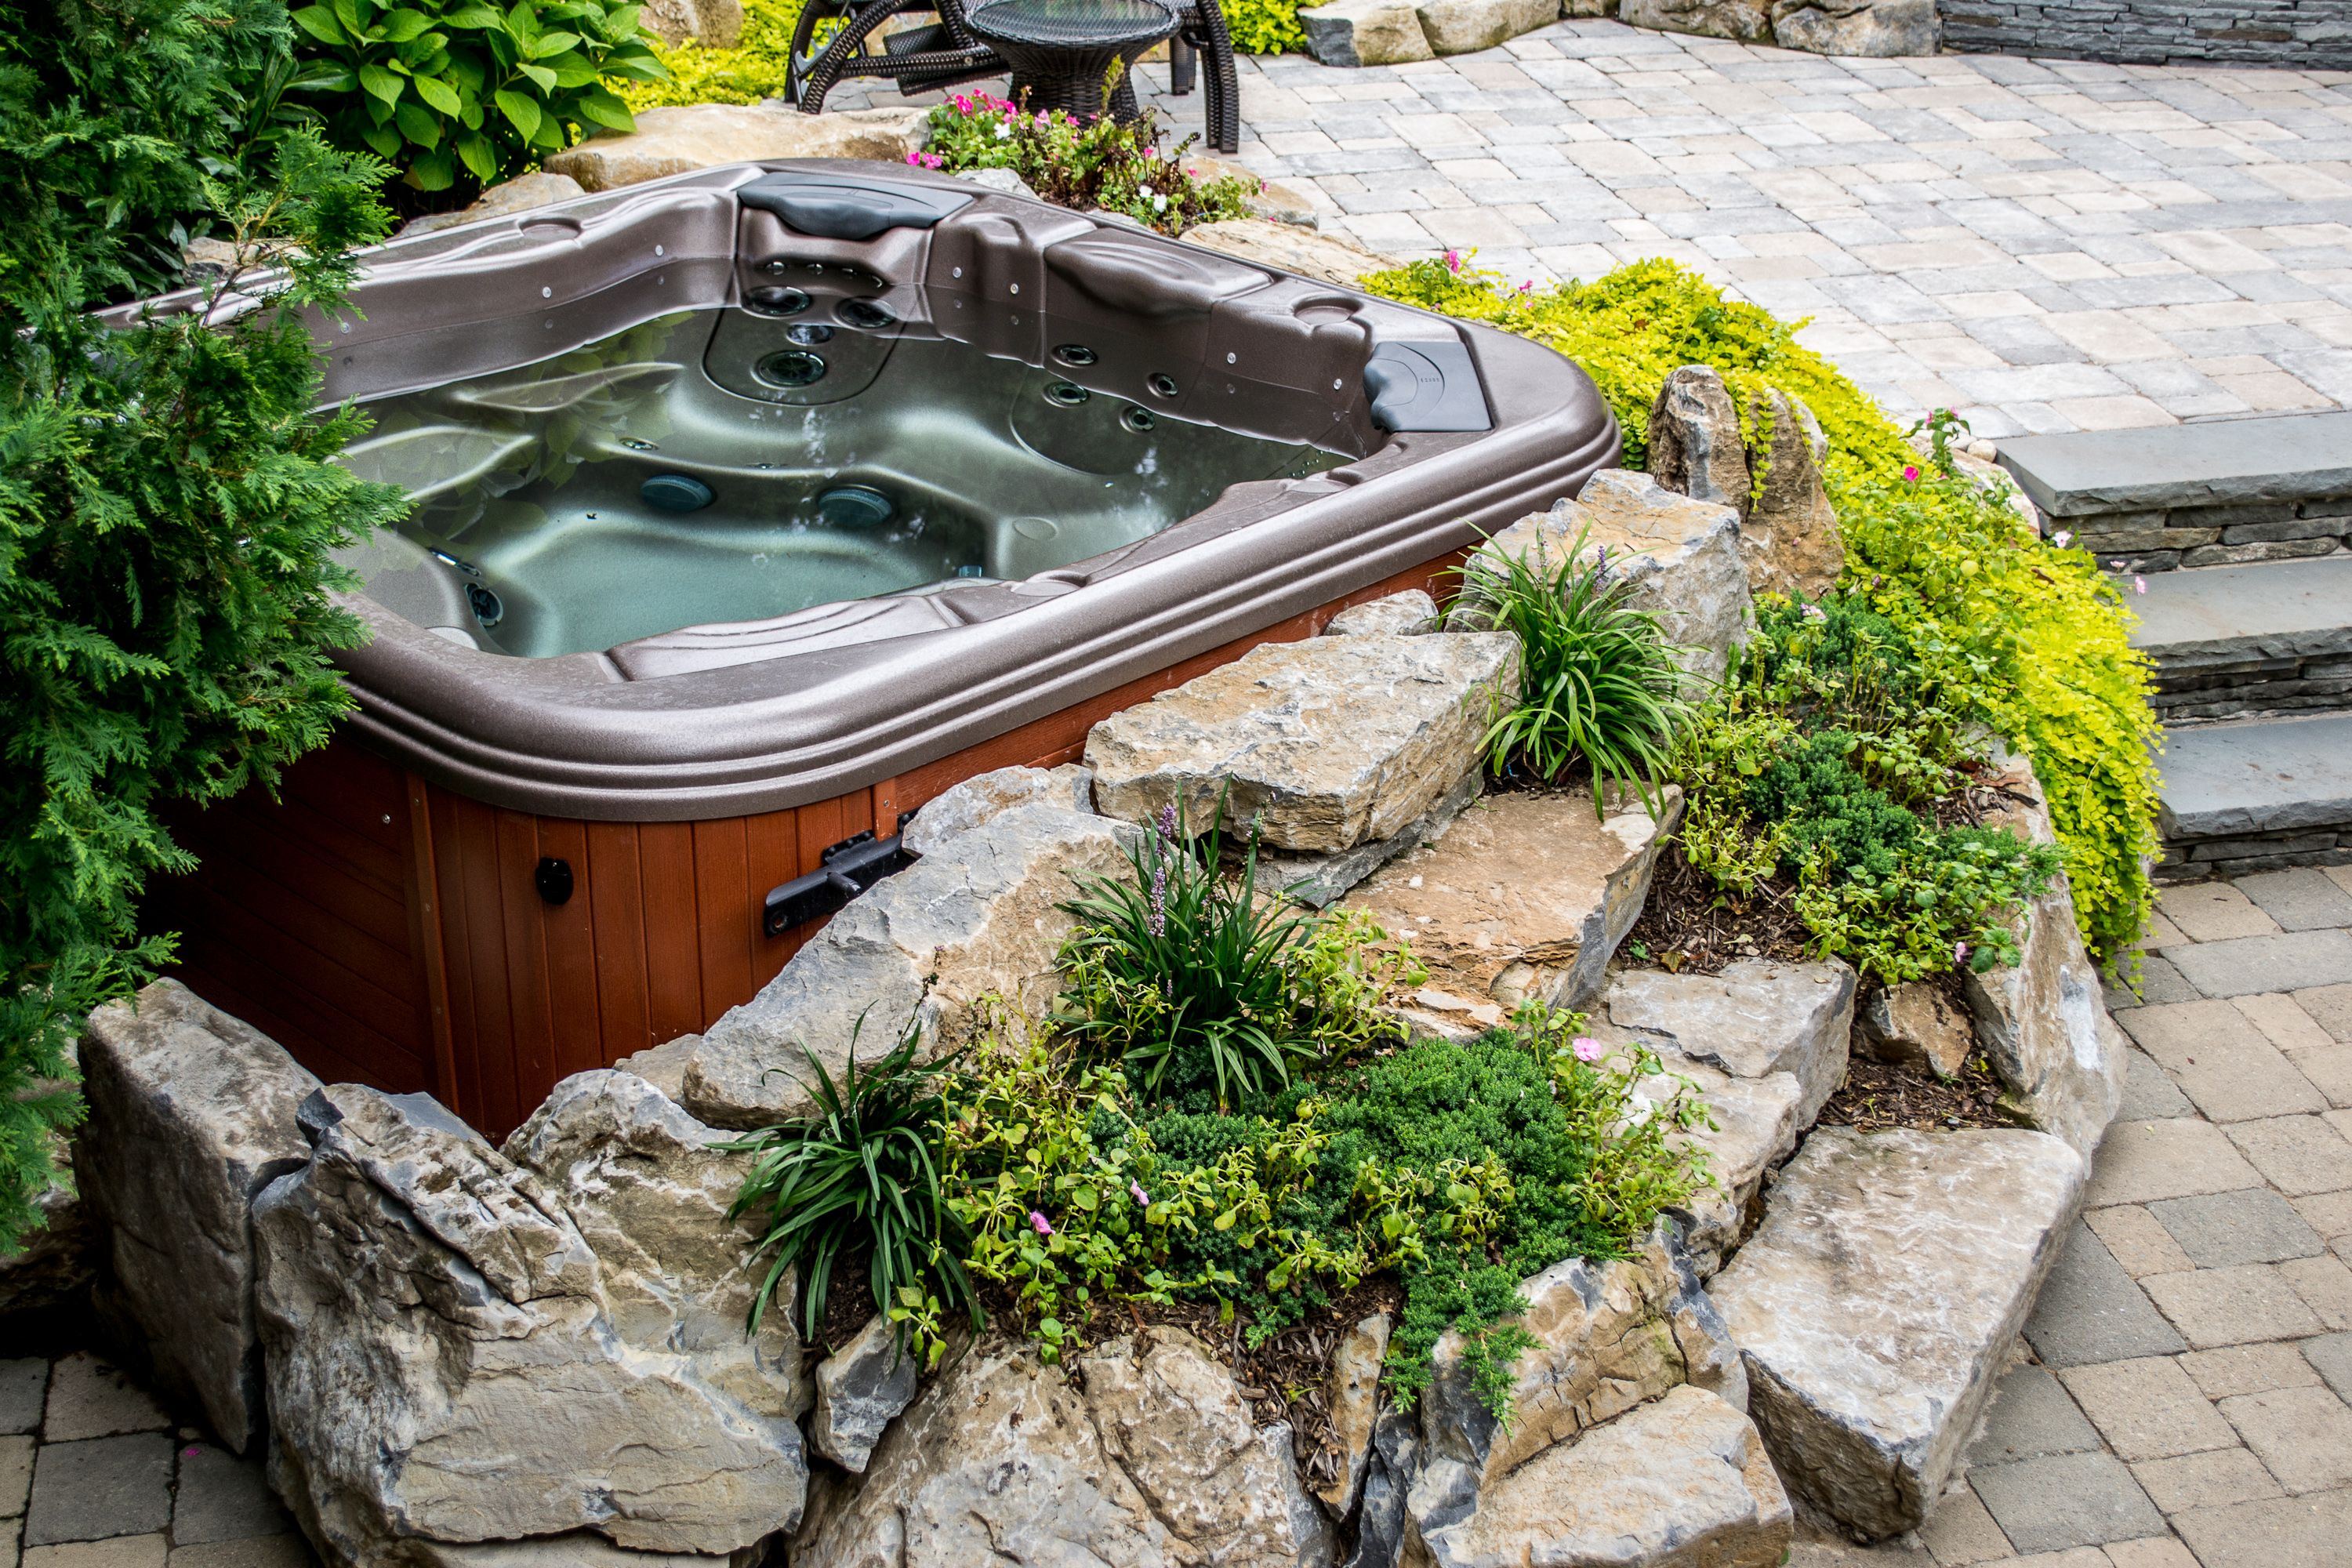 Hot tub landscaping ideas bullfrog spas long island hot for Garden design ideas hot tubs